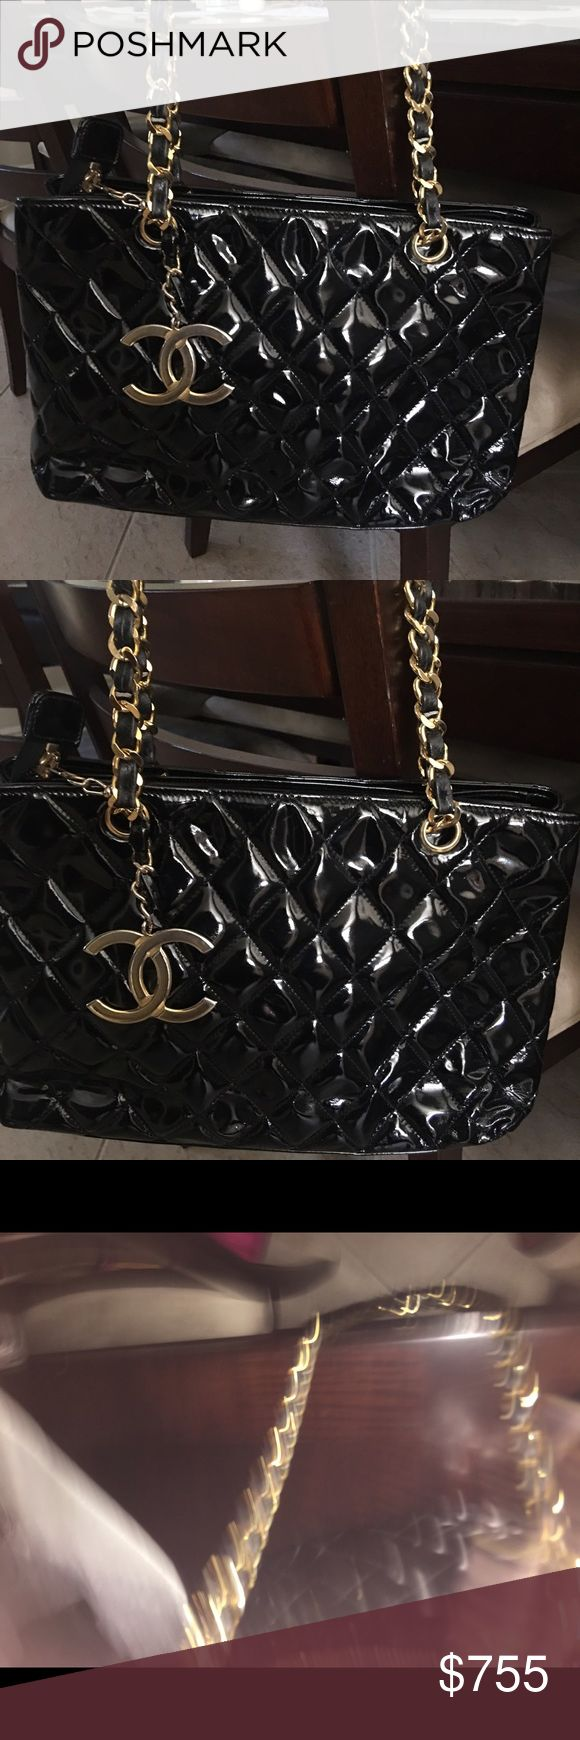 Authentic Chanel Shoulder Bag Chanel Black and gold leather chain shoulder bag. Very good condition and comes with dust bag. CHANEL Bags Shoulder Bags